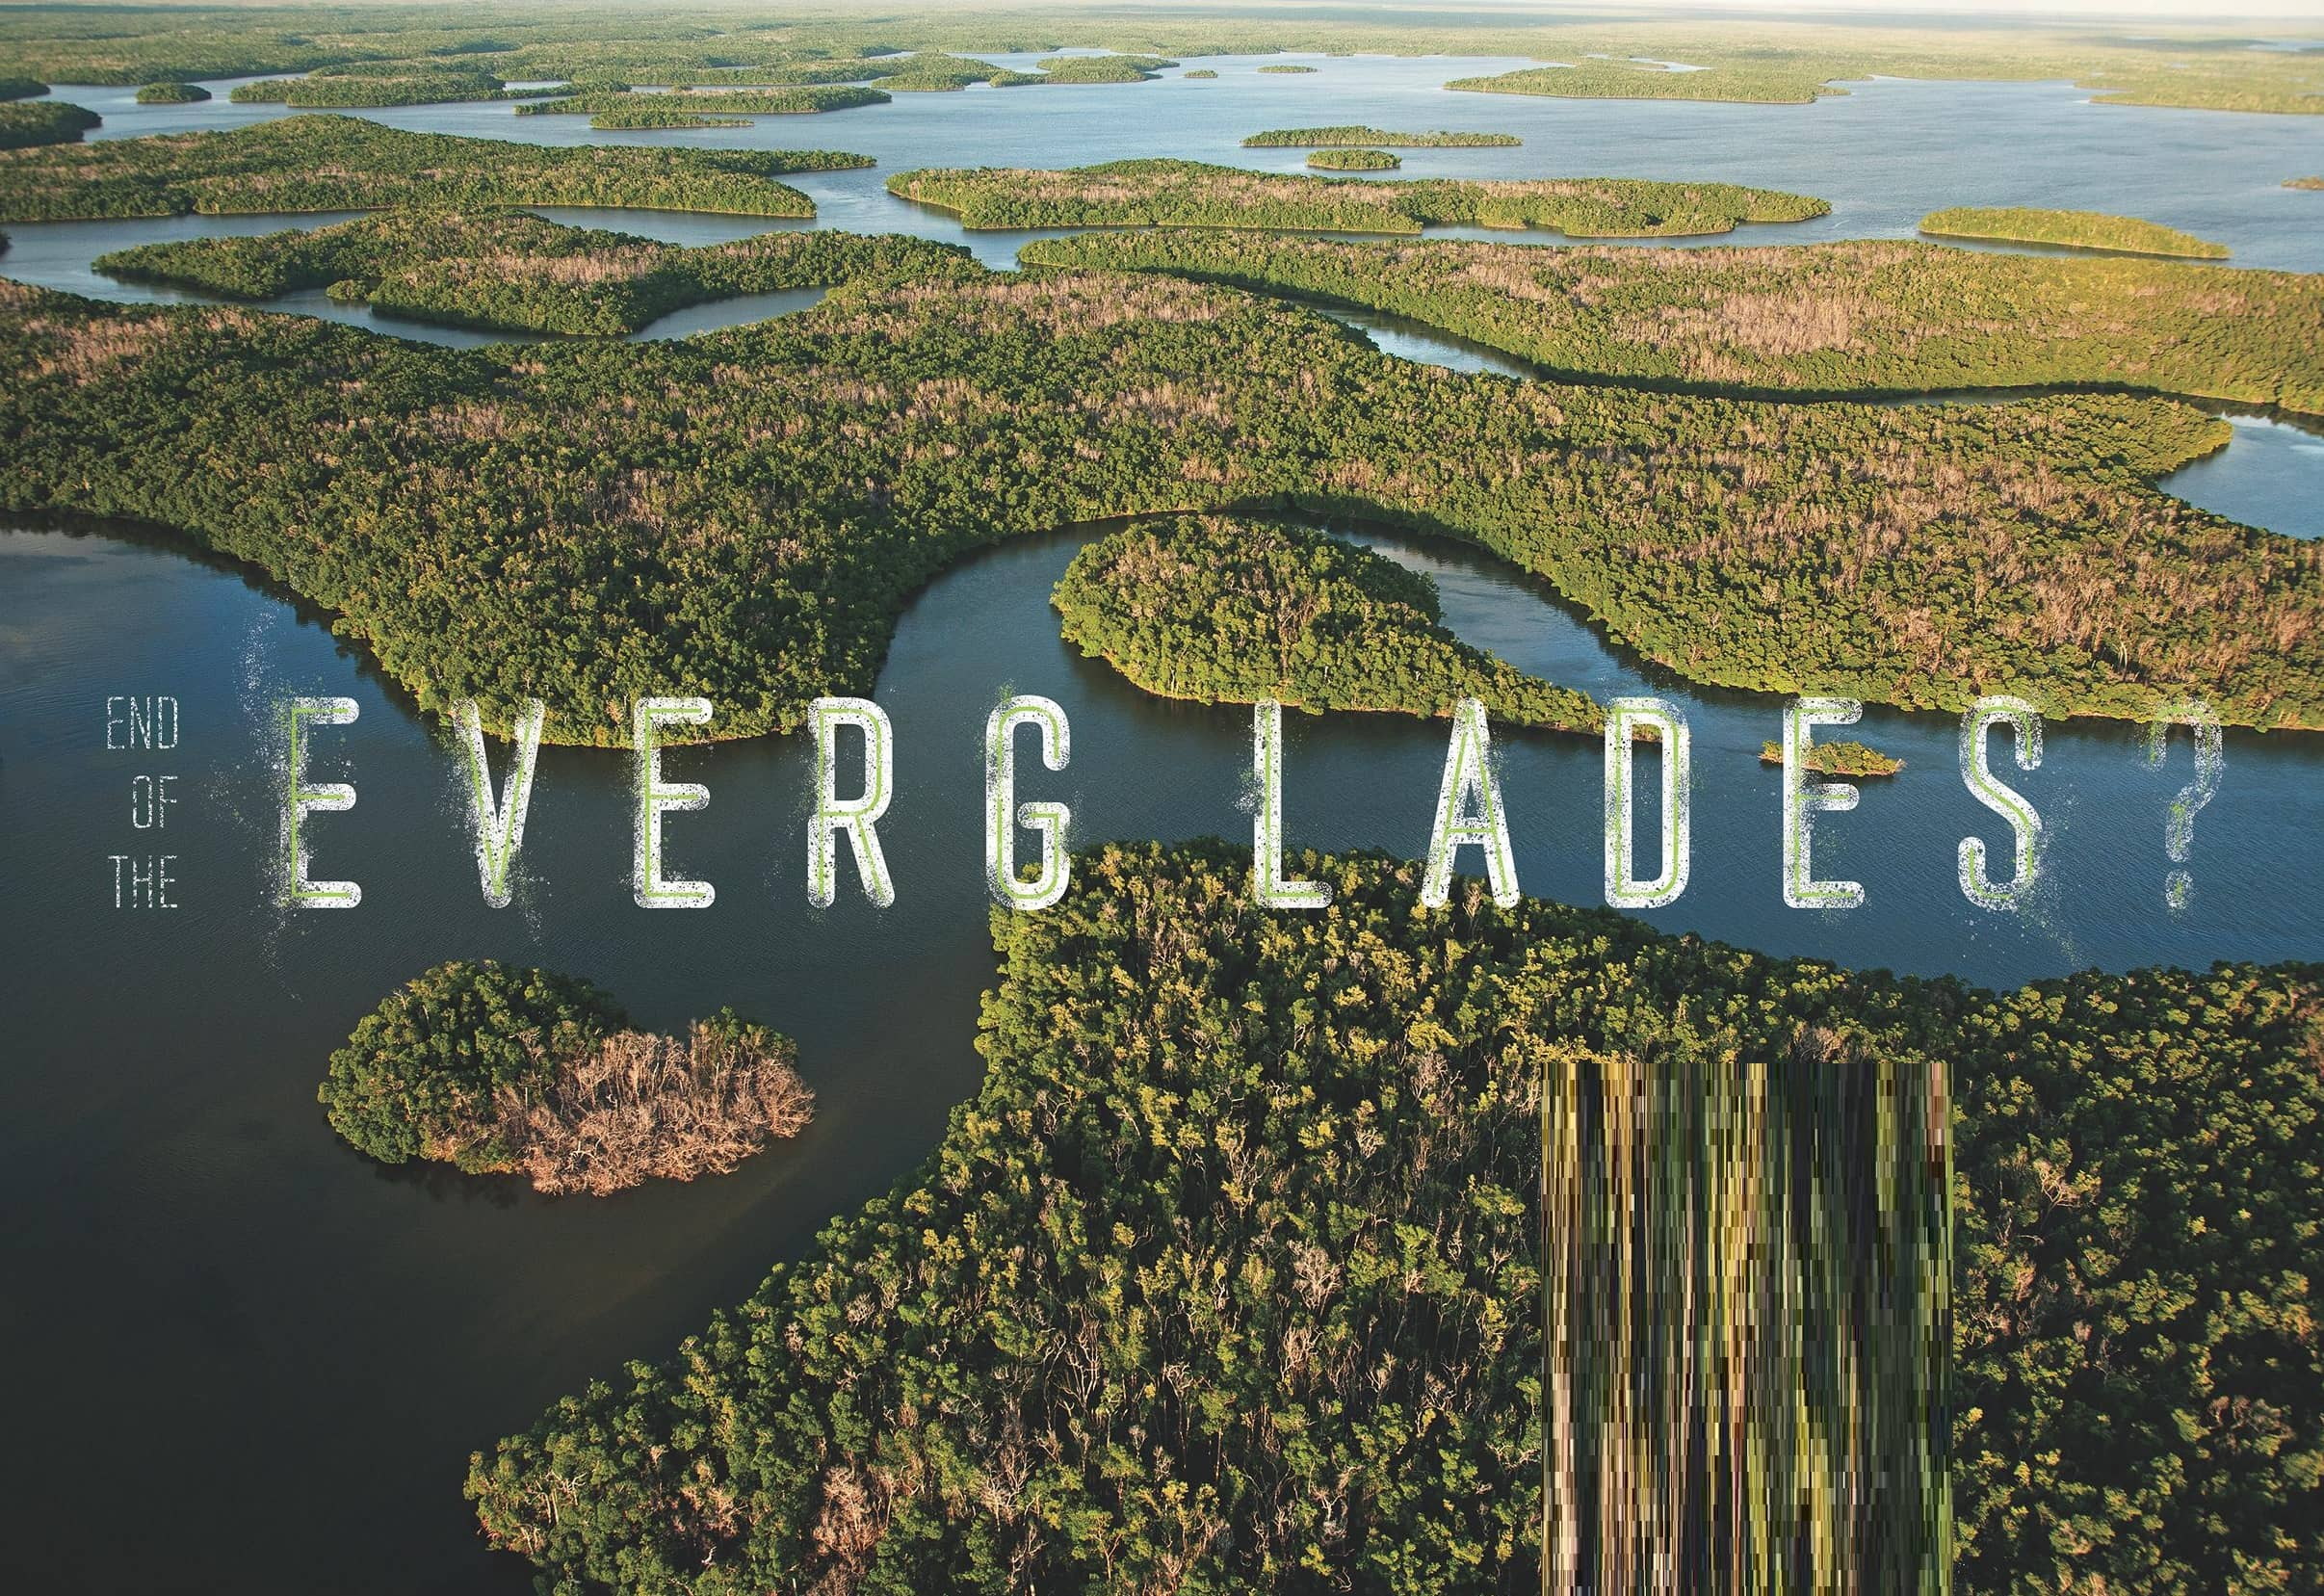 End of The Everglades?